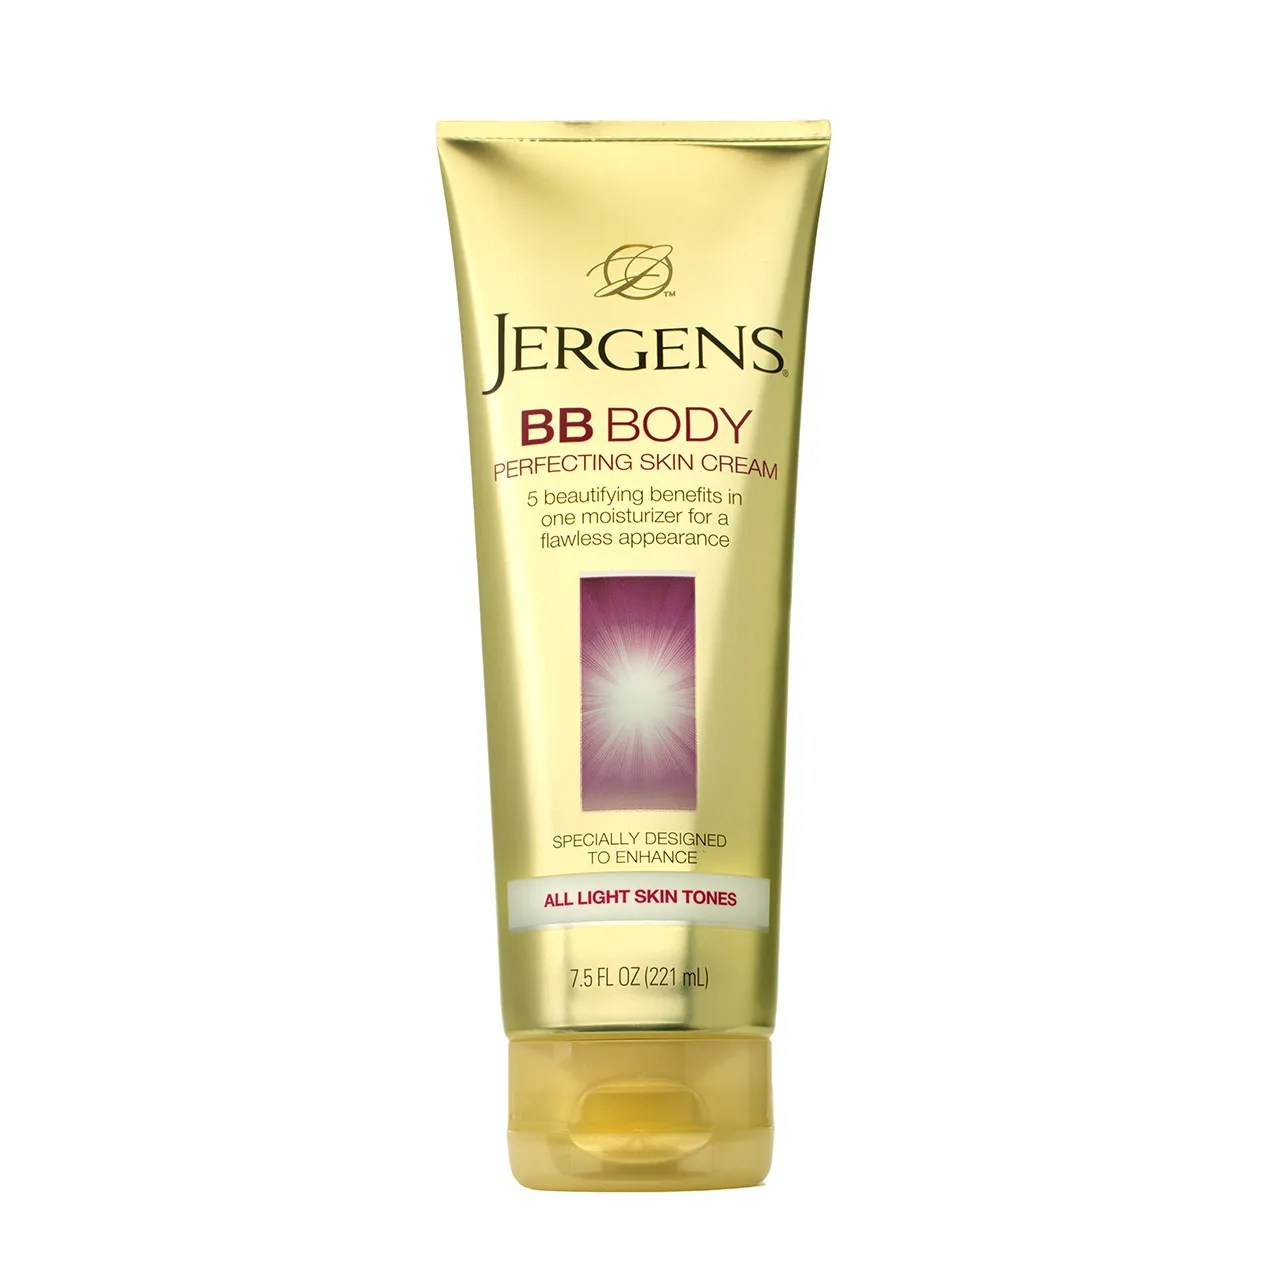 Jergens BB Body Perfecting Skin Cream Review Allure